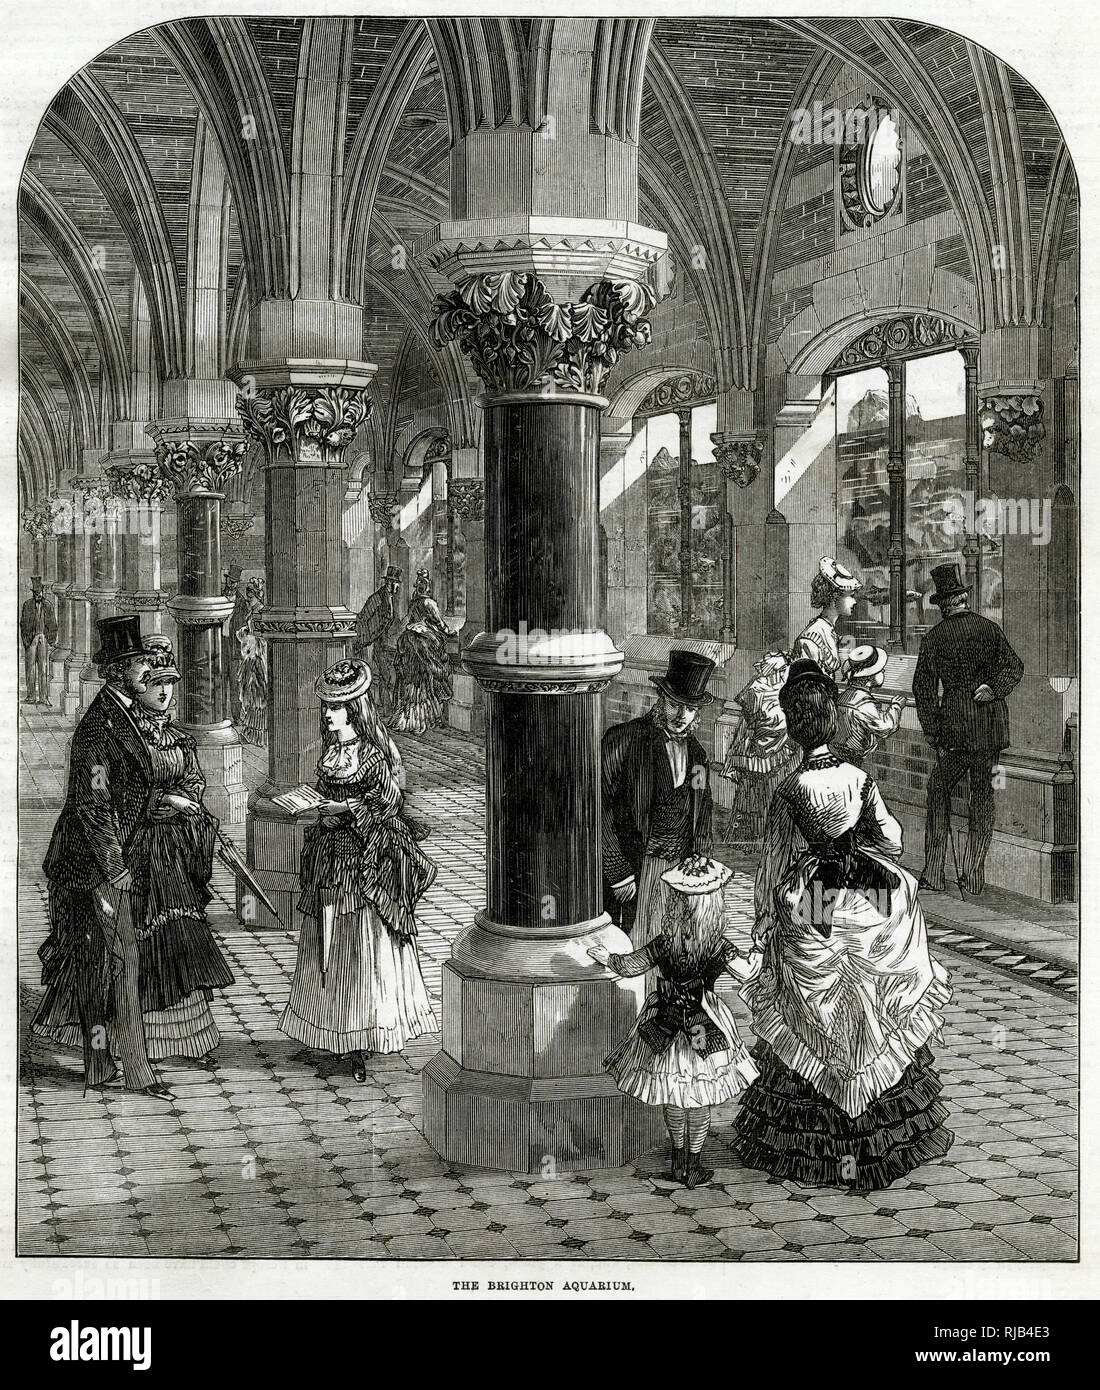 Interior of Brighton Aquarium, construction of a new sea-wall and promenade, the Madeira Road, which was commenced in 1869. The whole project was completed in 1872 at a cost of £130,000. Stock Photo